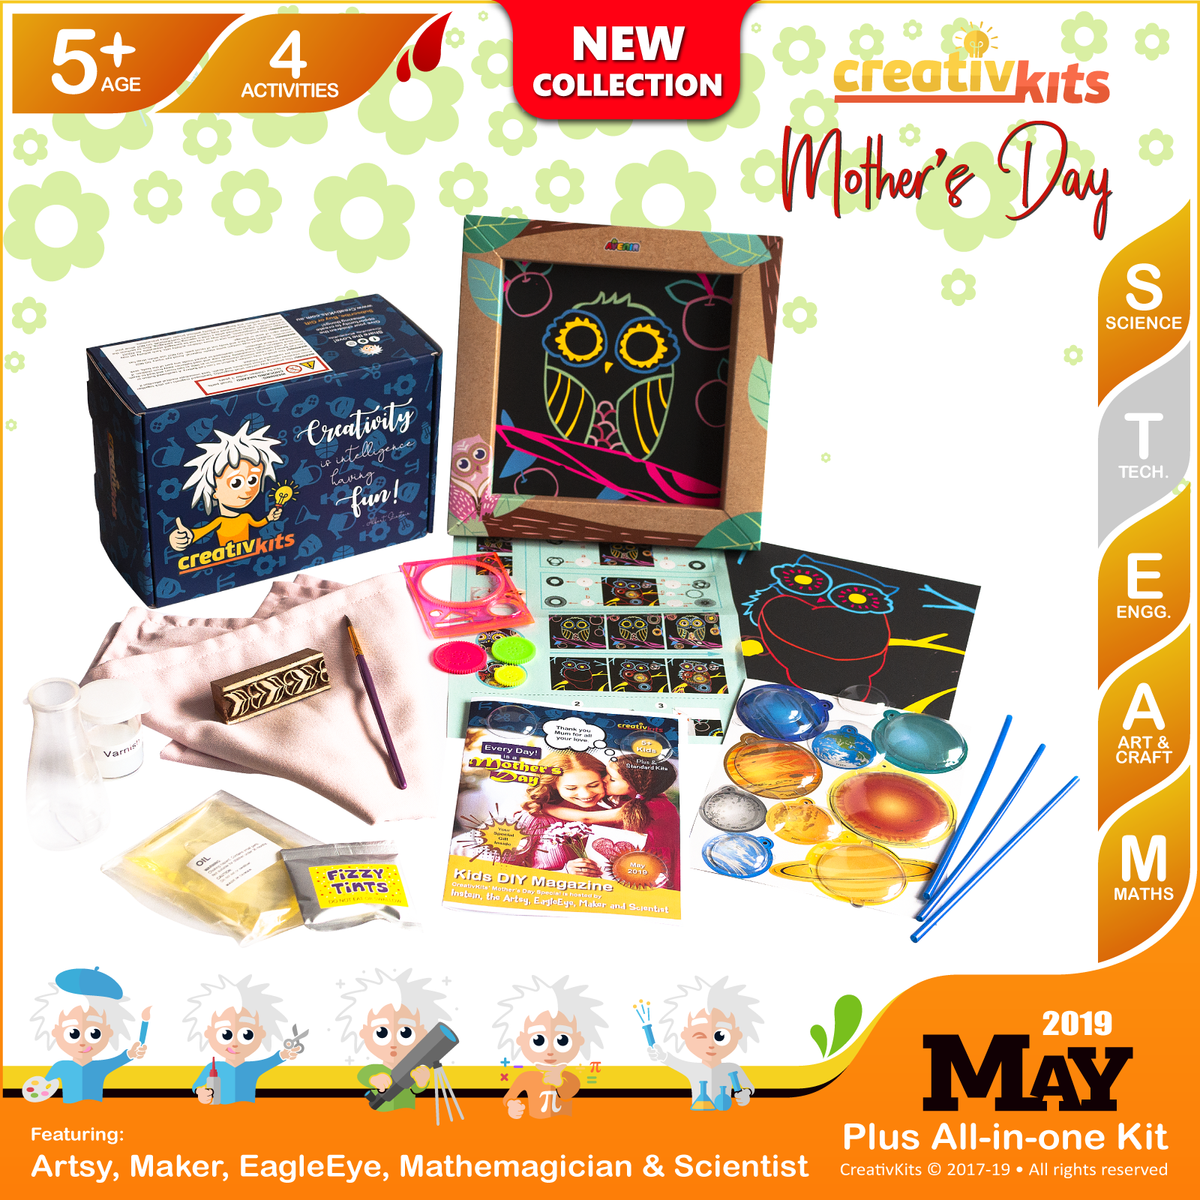 May Plus Kit • Age 5 plus • Solar System Mobile, Block Printed Cushion Covers, MYO Lava Lamp and Spiro Art